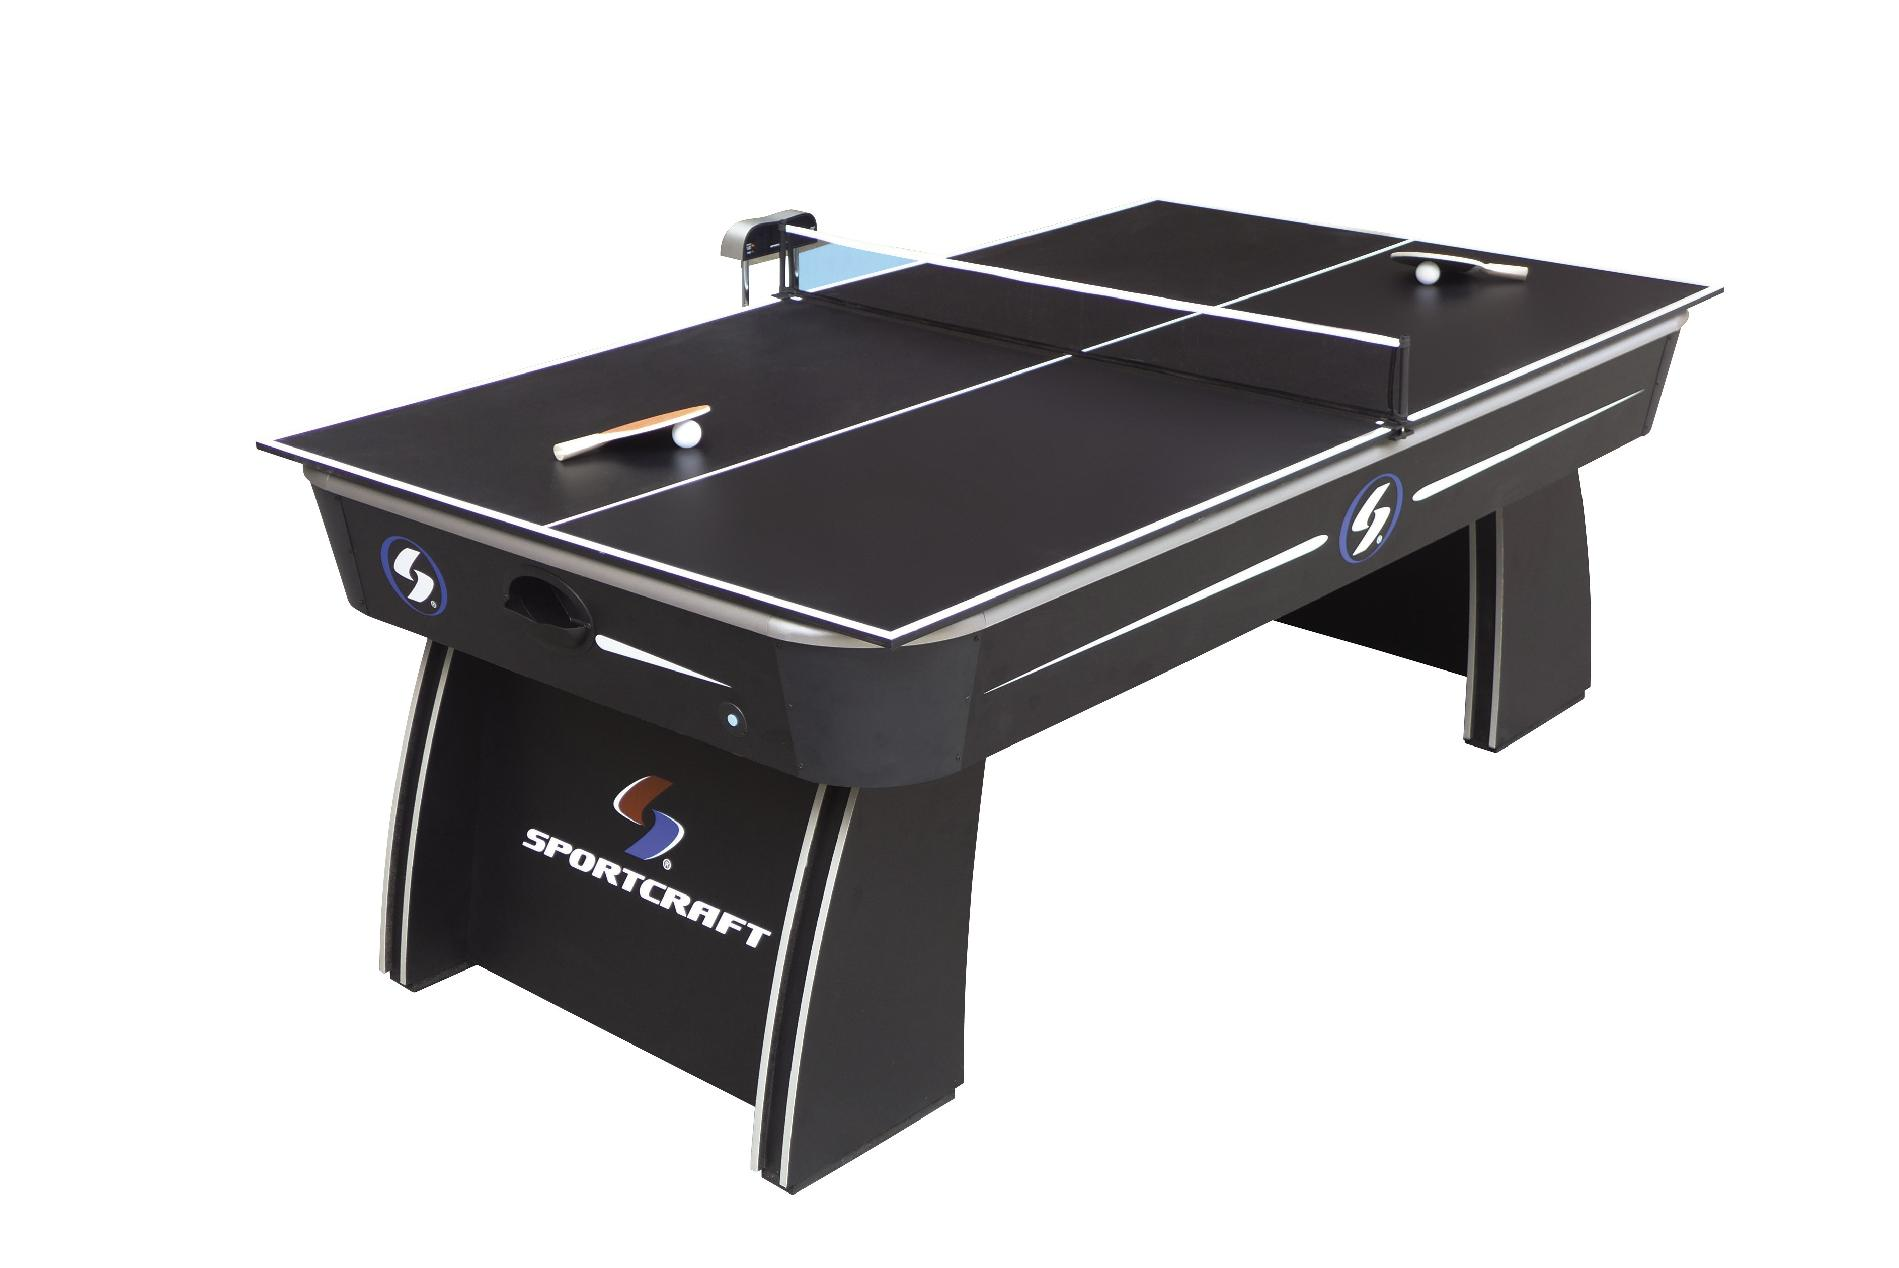 Sportcraft 7 Ft. Classic Electronic Air Hockey Table